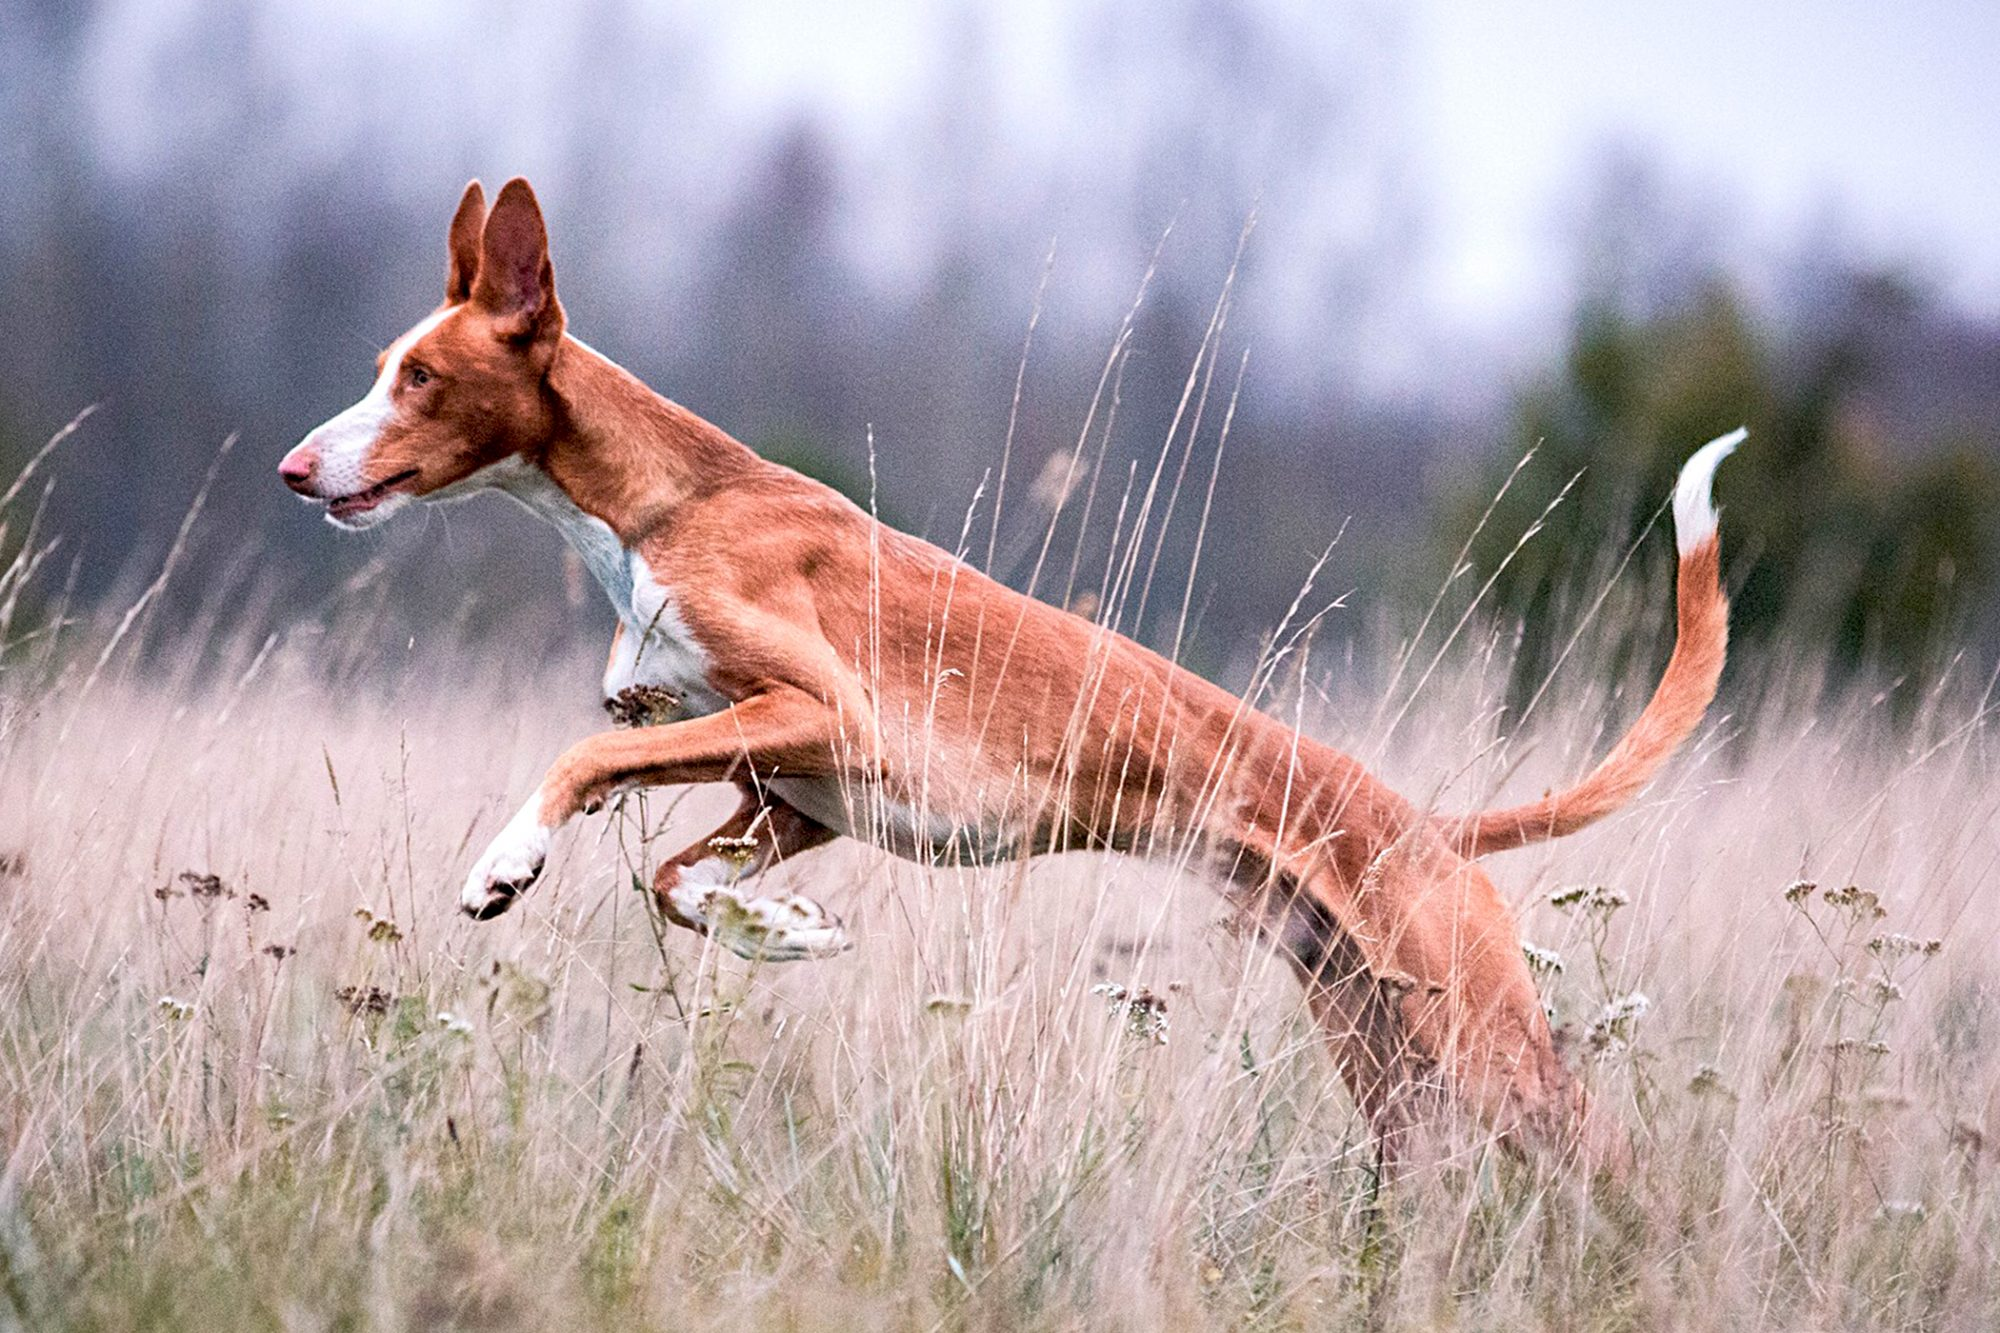 ibizan hound running outside in a field